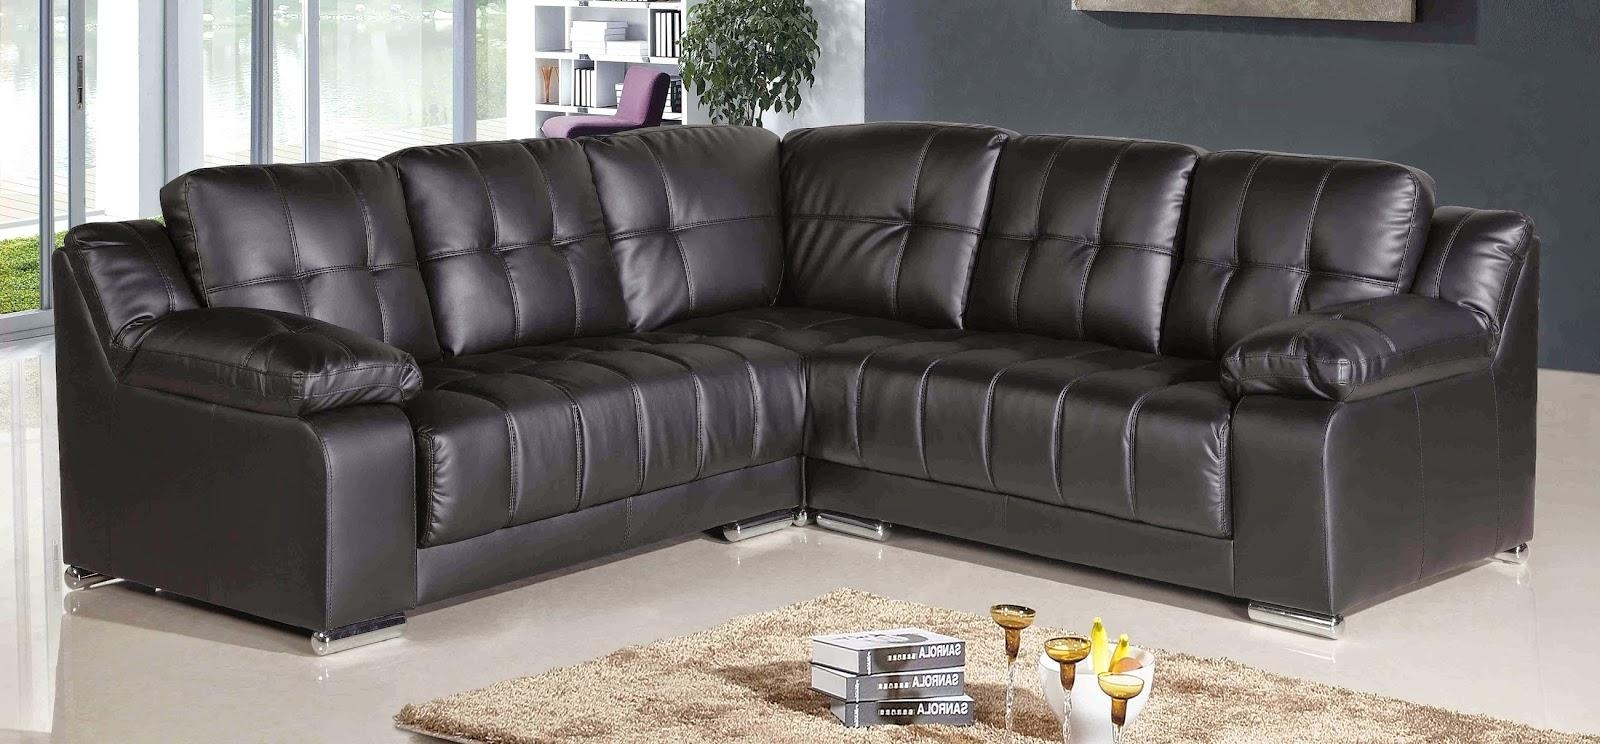 Why To Choose A Corner Sofa To Decorate Your Living Room | Find In Cheap Corner Sofa Bed (Image 20 of 20)